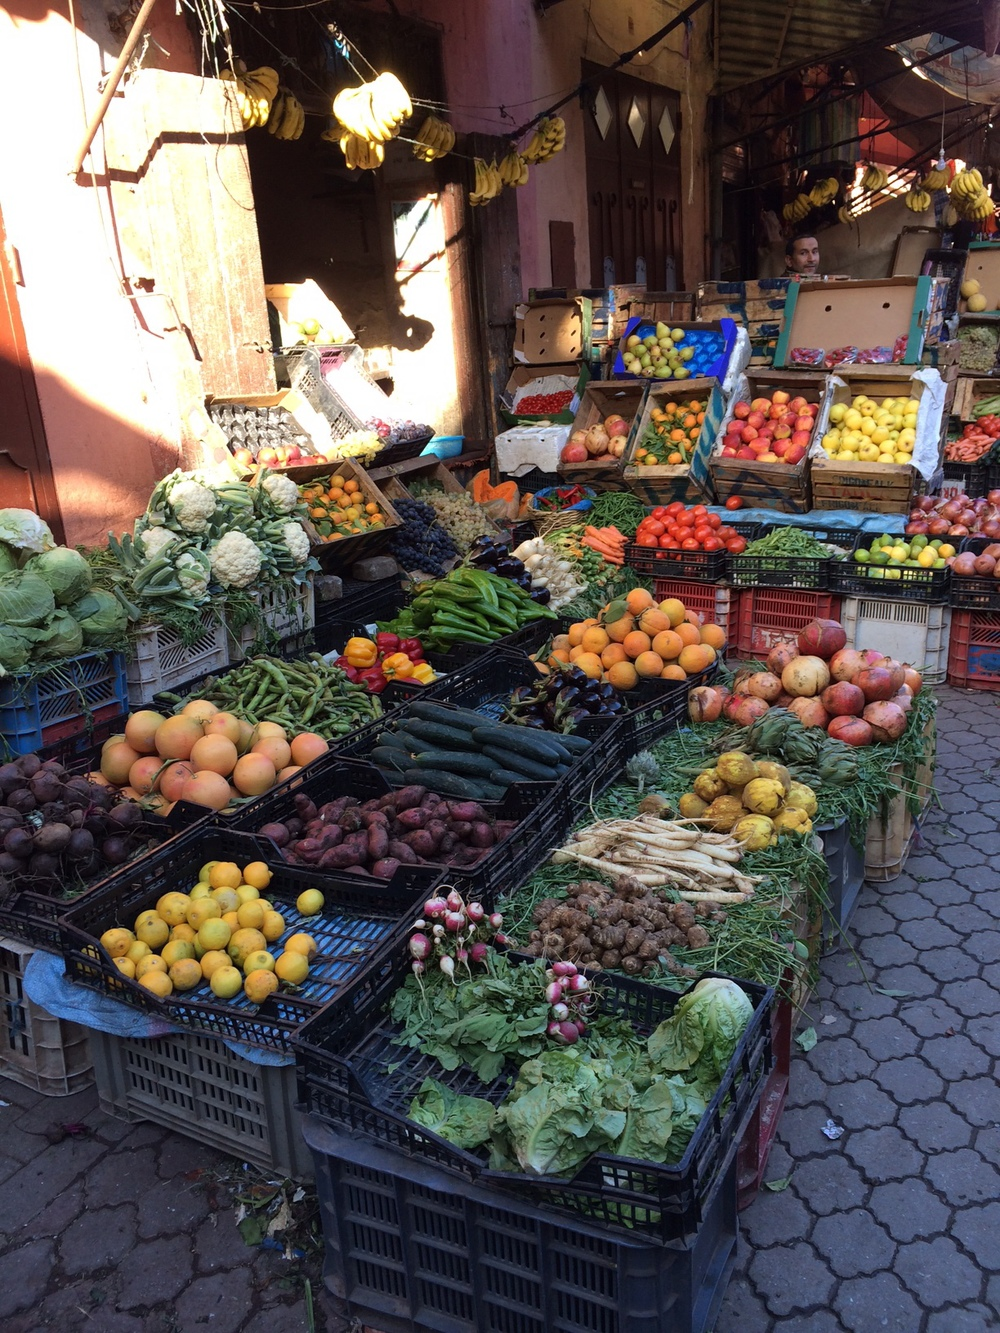 Colourful produce stands line the streets